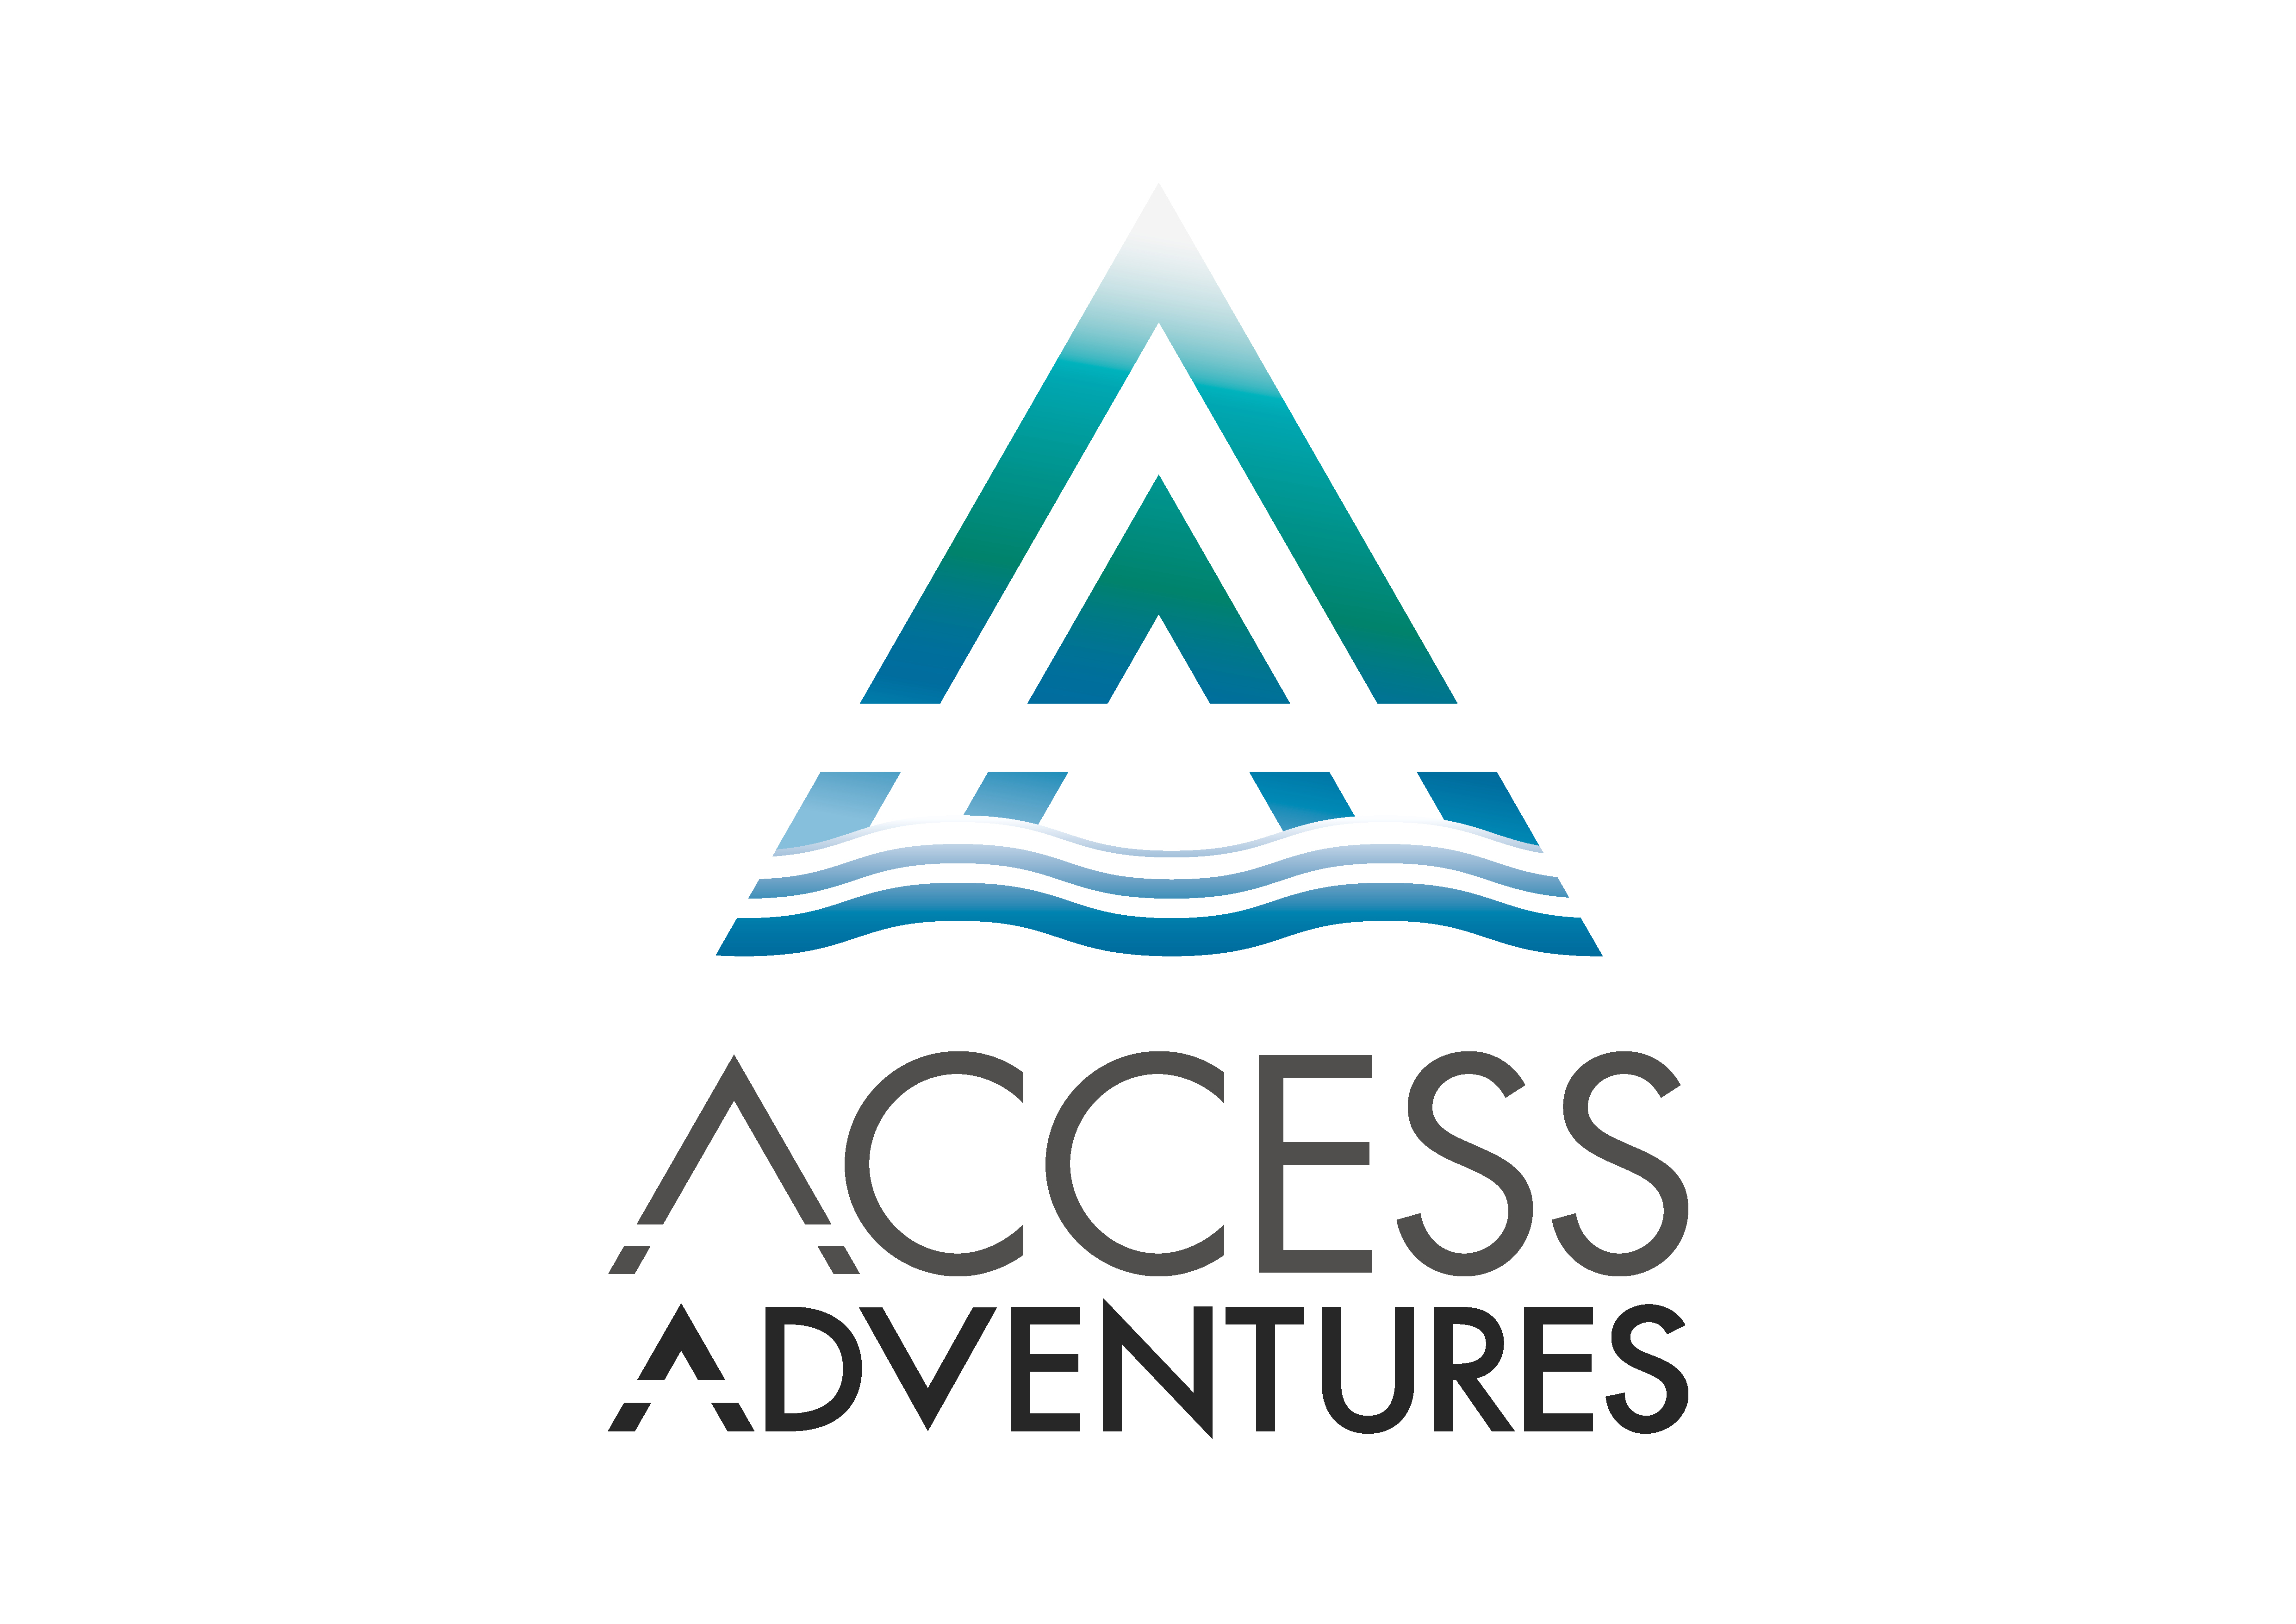 Access Adventure logo